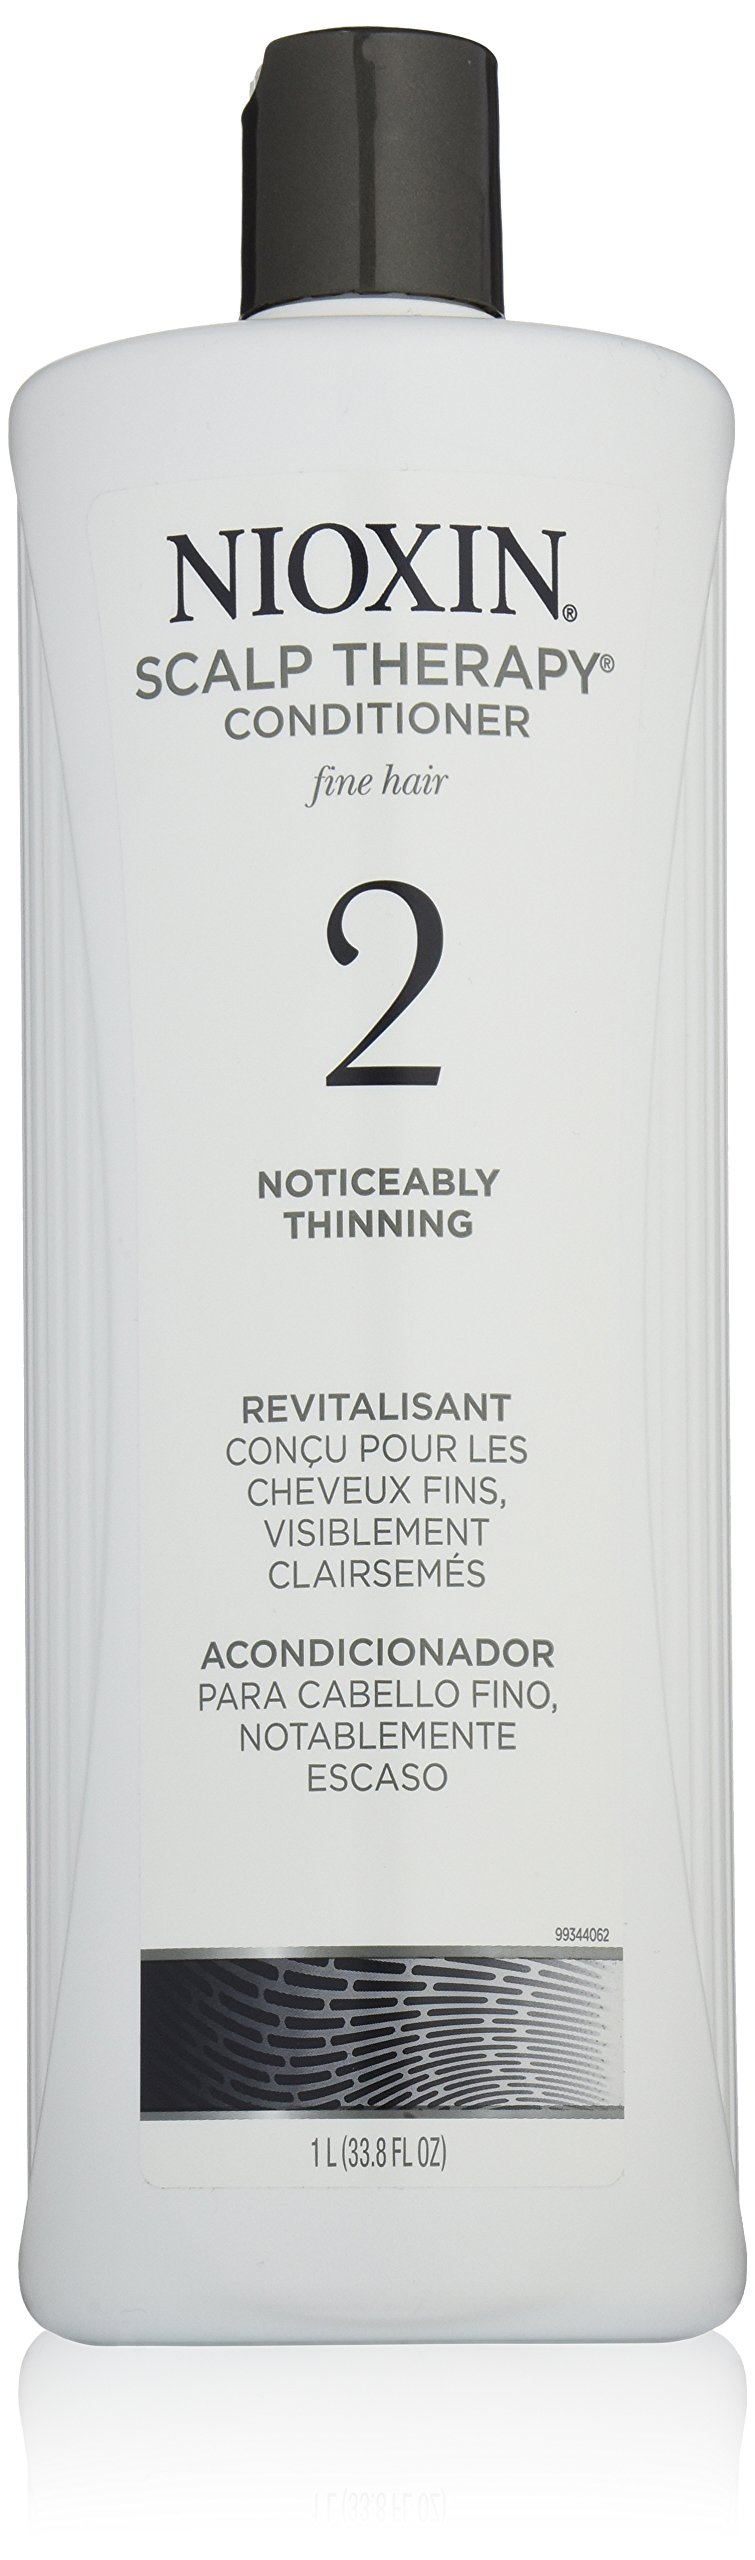 Nioxin Scalp Therapy, System 2 (Noticeably Thinning) Conditioner, 33.8 Ounce by Nioxin